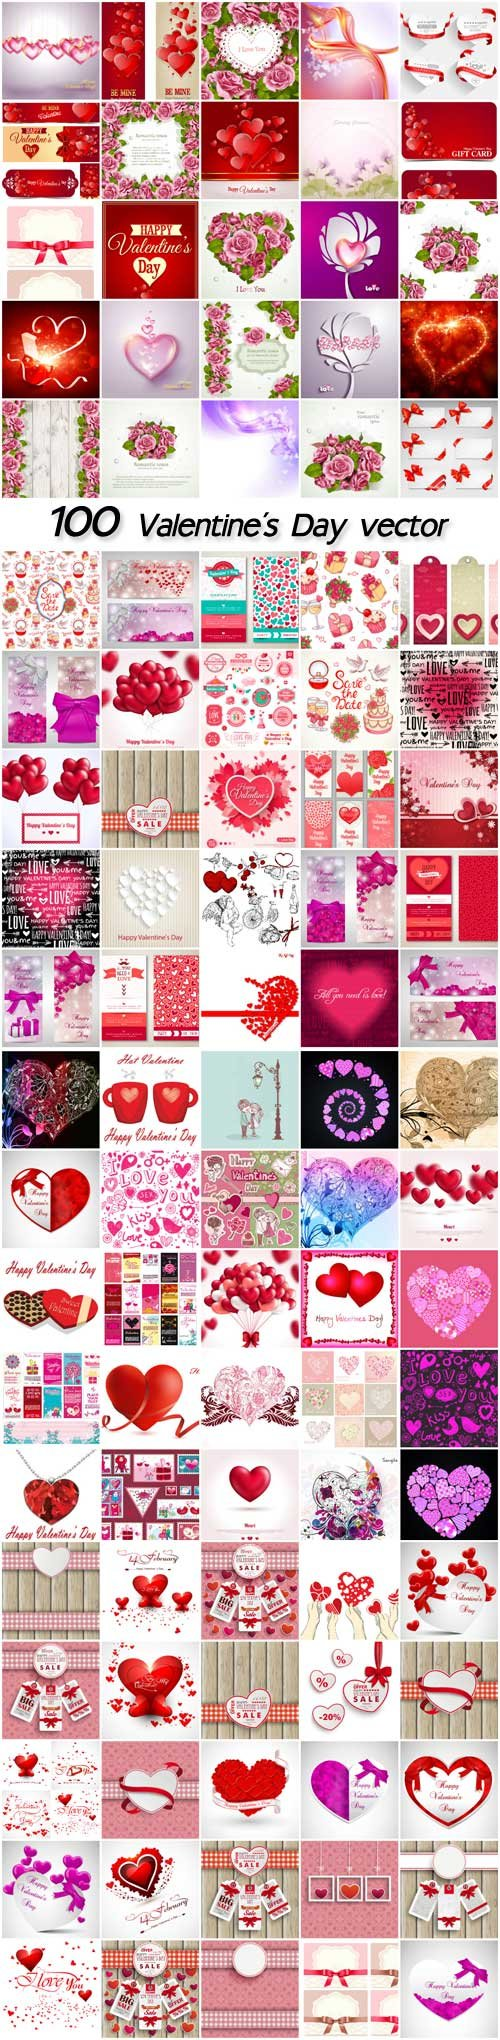 Valentine's Day, vector backgrounds romantic, hearts, cupids